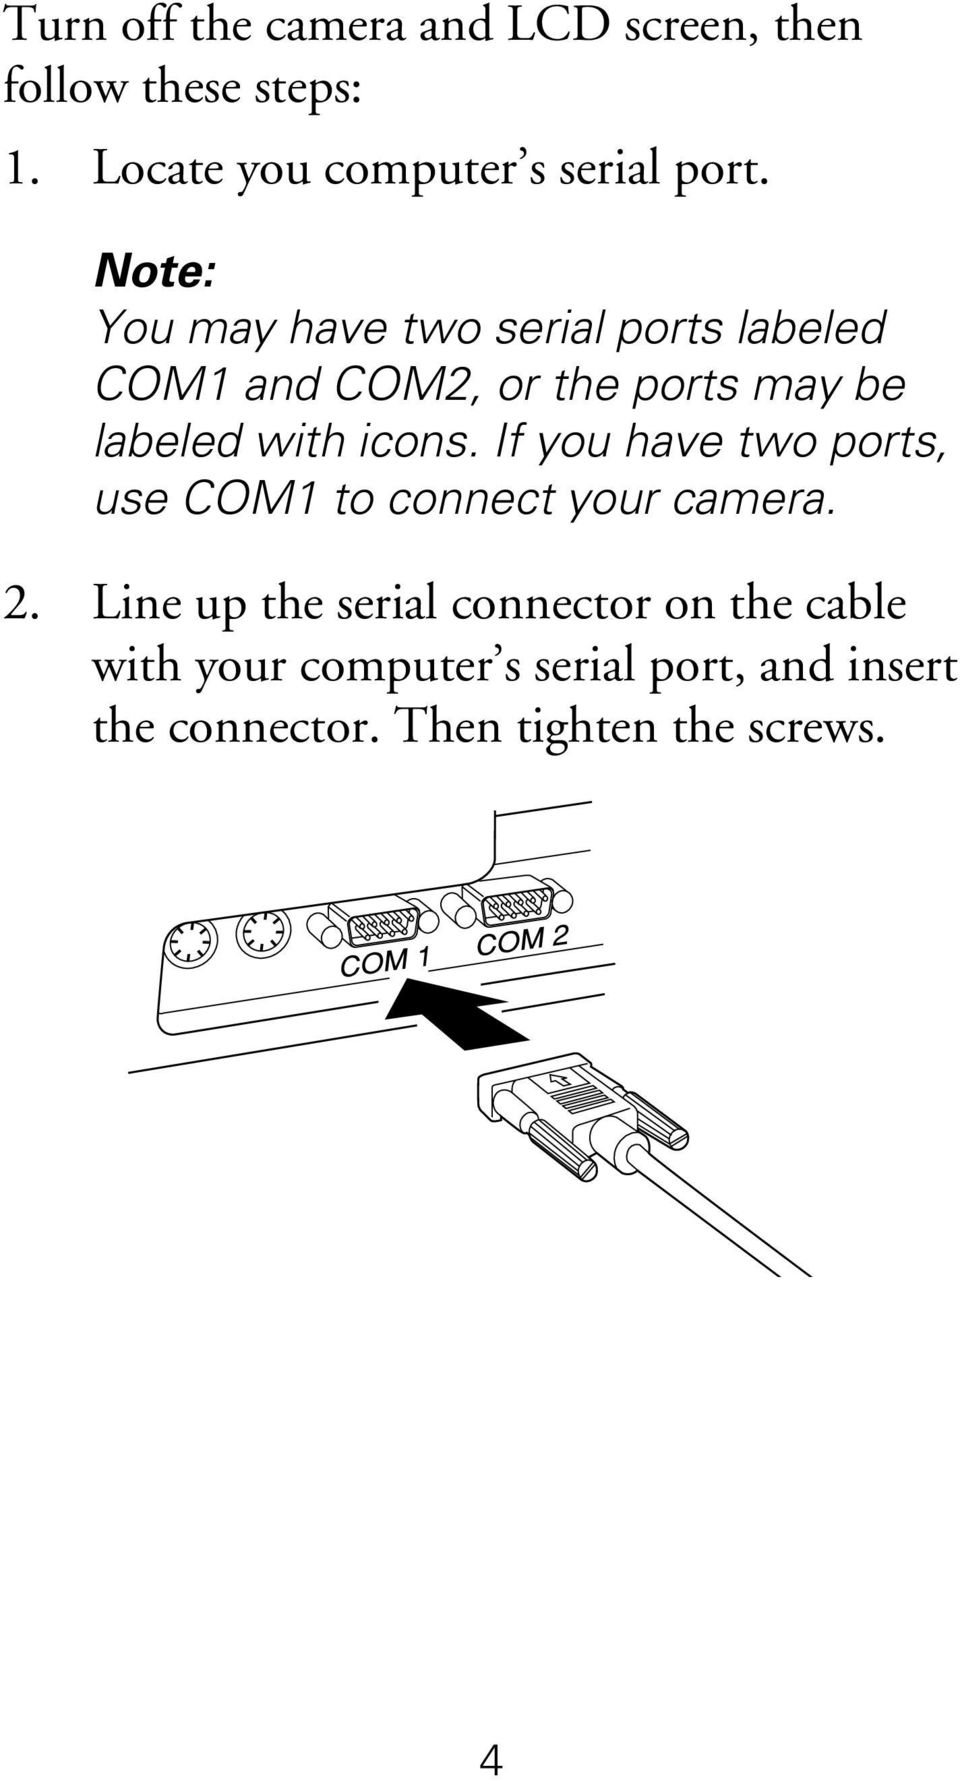 Note: You may have two serial ports labeled COM1 and COM2, or the ports may be labeled with